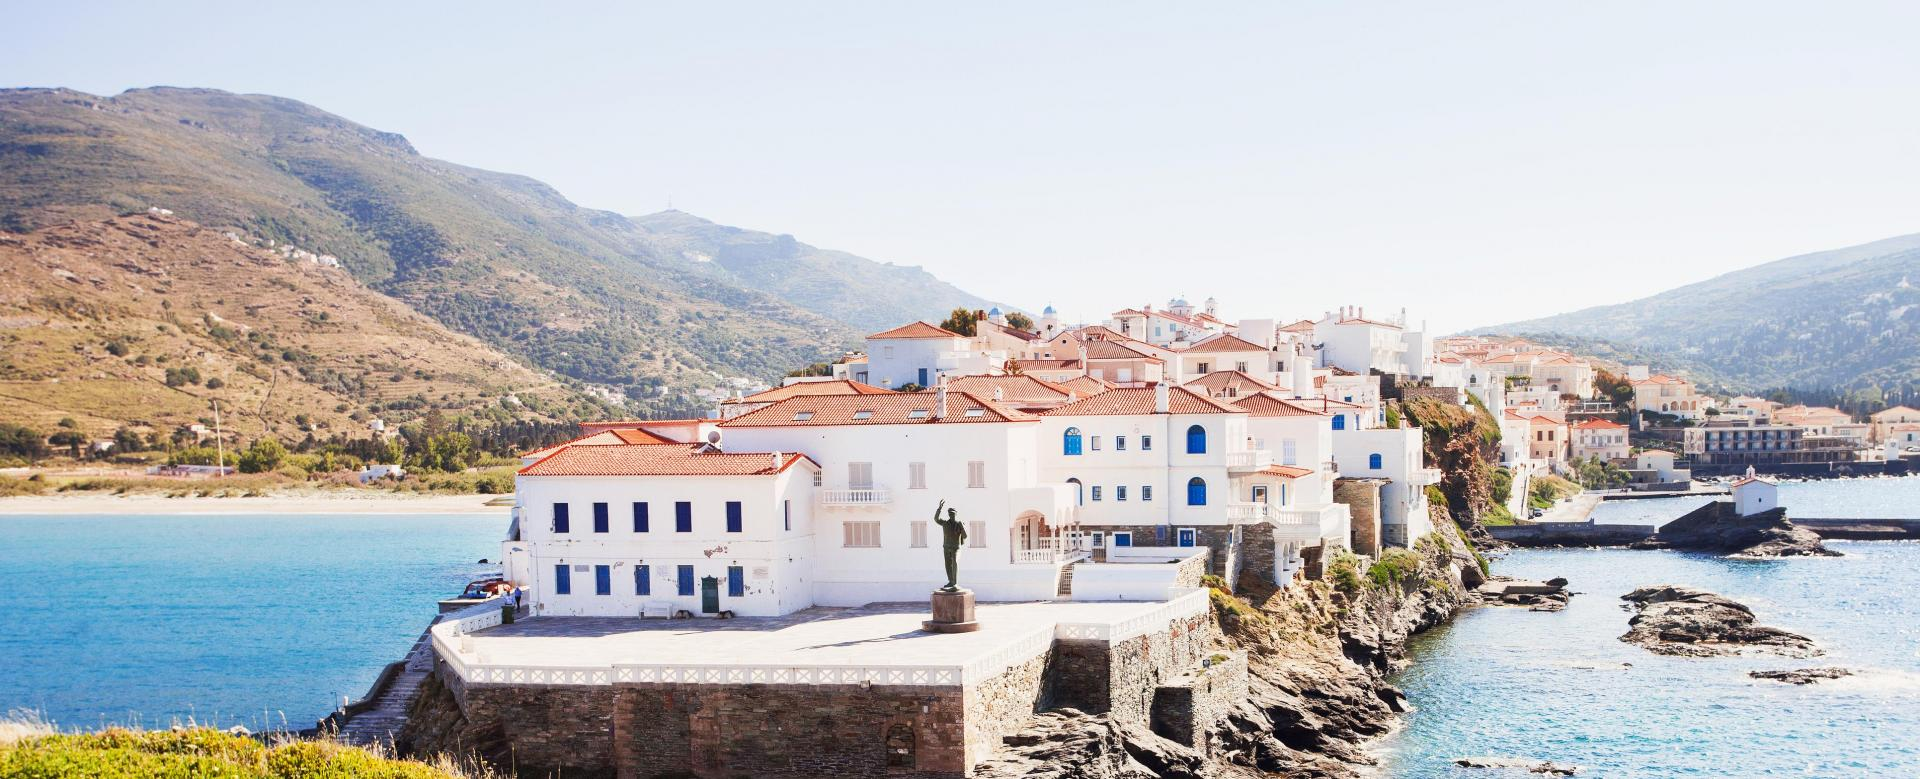 Voyage à pied Grèce : Cyclades : andros et tinos